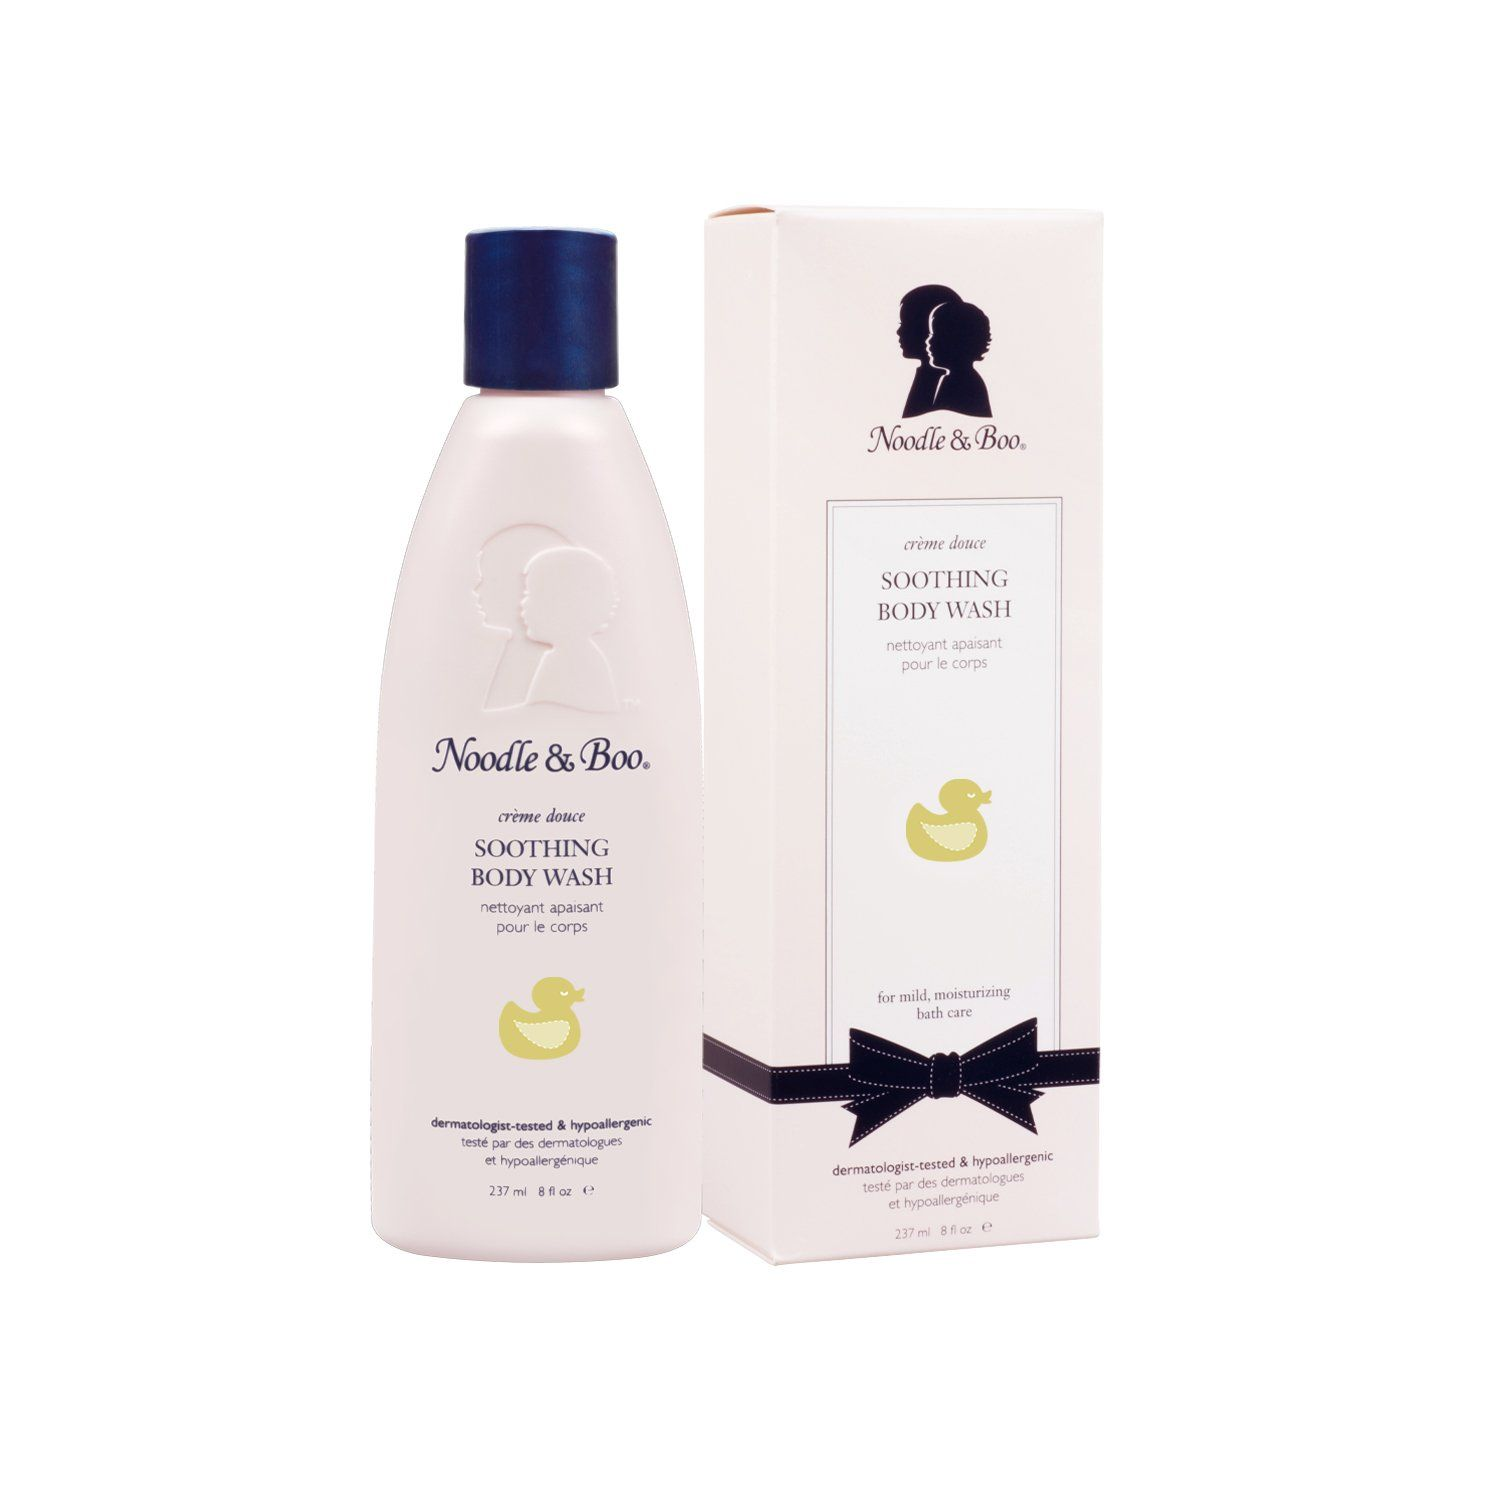 00010 / 8OZ / NOODLE & BOO SOOTHING BODY WASH